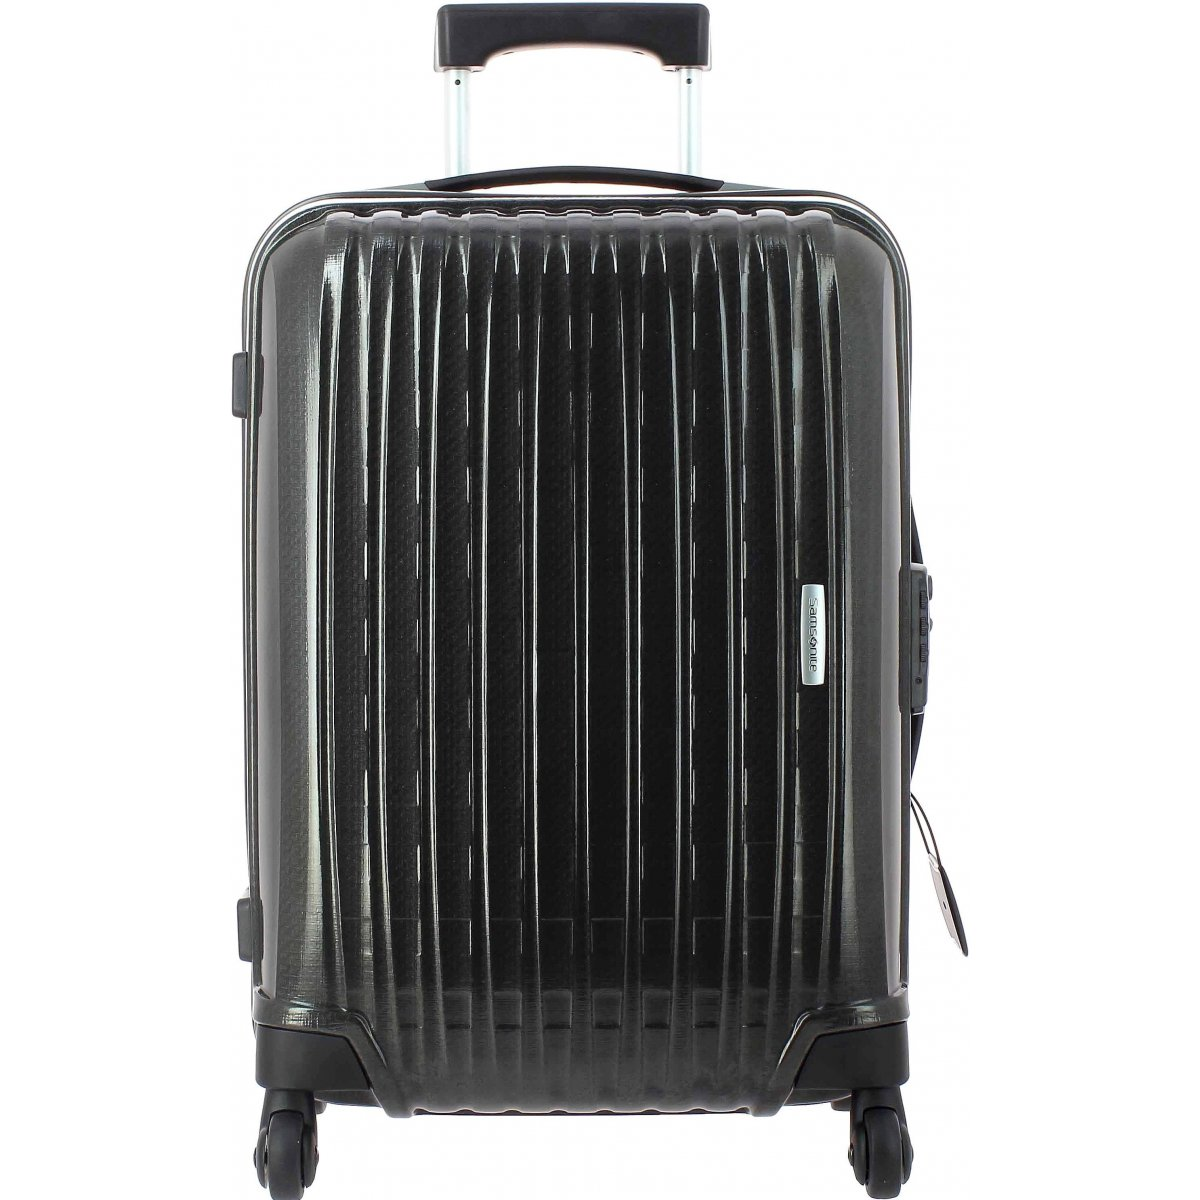 valise cabine chronolite spinner 55 20 samsonite chronolite84 couleur principale gris. Black Bedroom Furniture Sets. Home Design Ideas